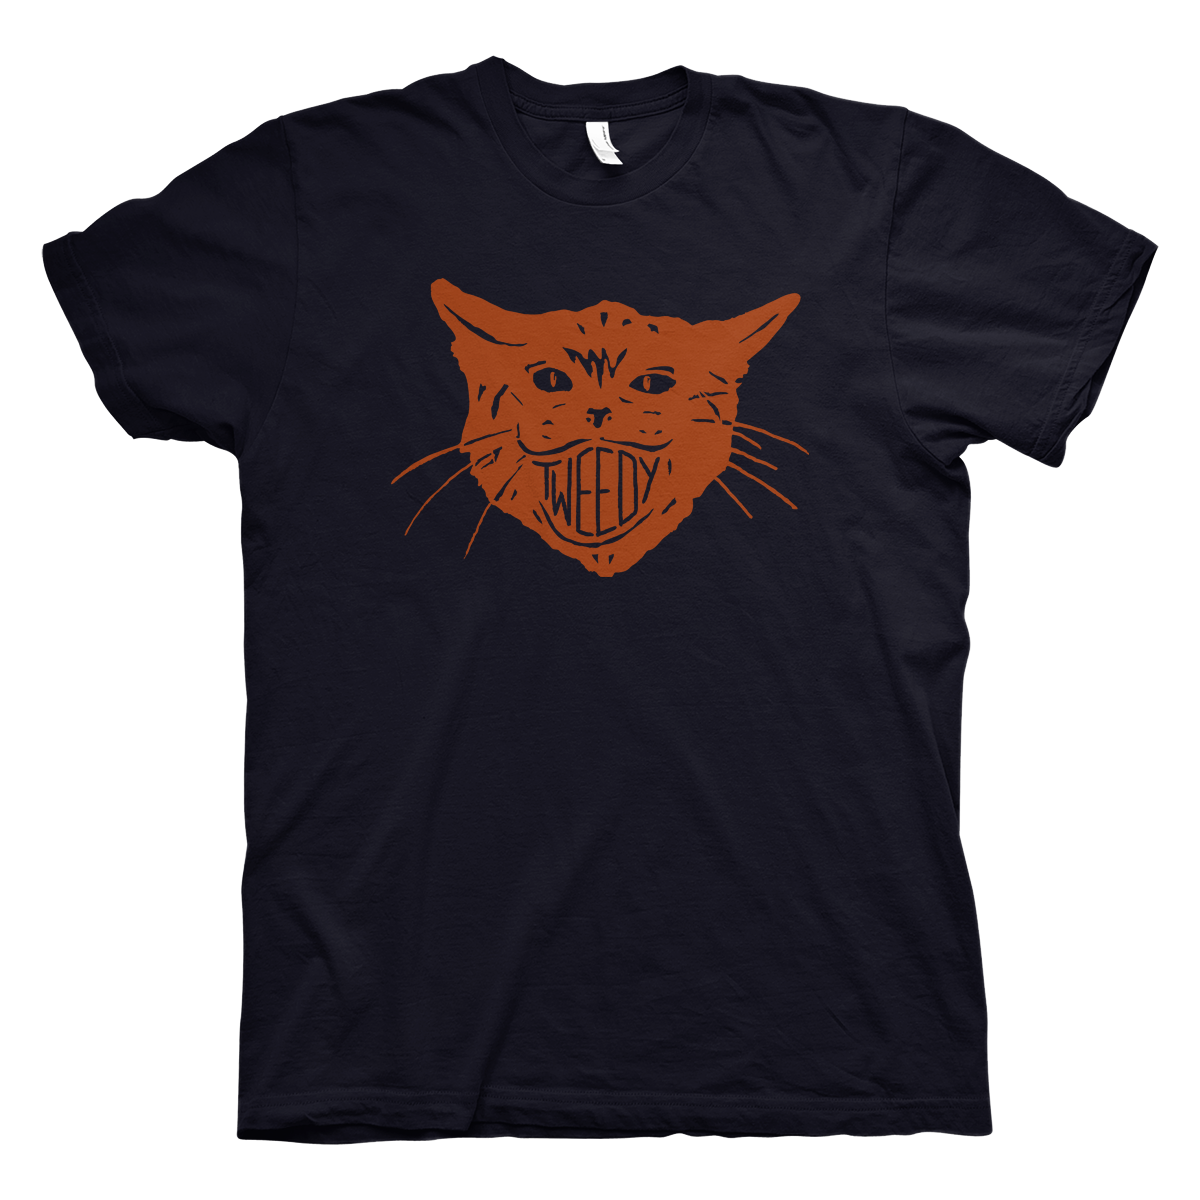 Jeff Tweedy cat artwork on a navy Tshirt from Bingo Merch Official Merchandise